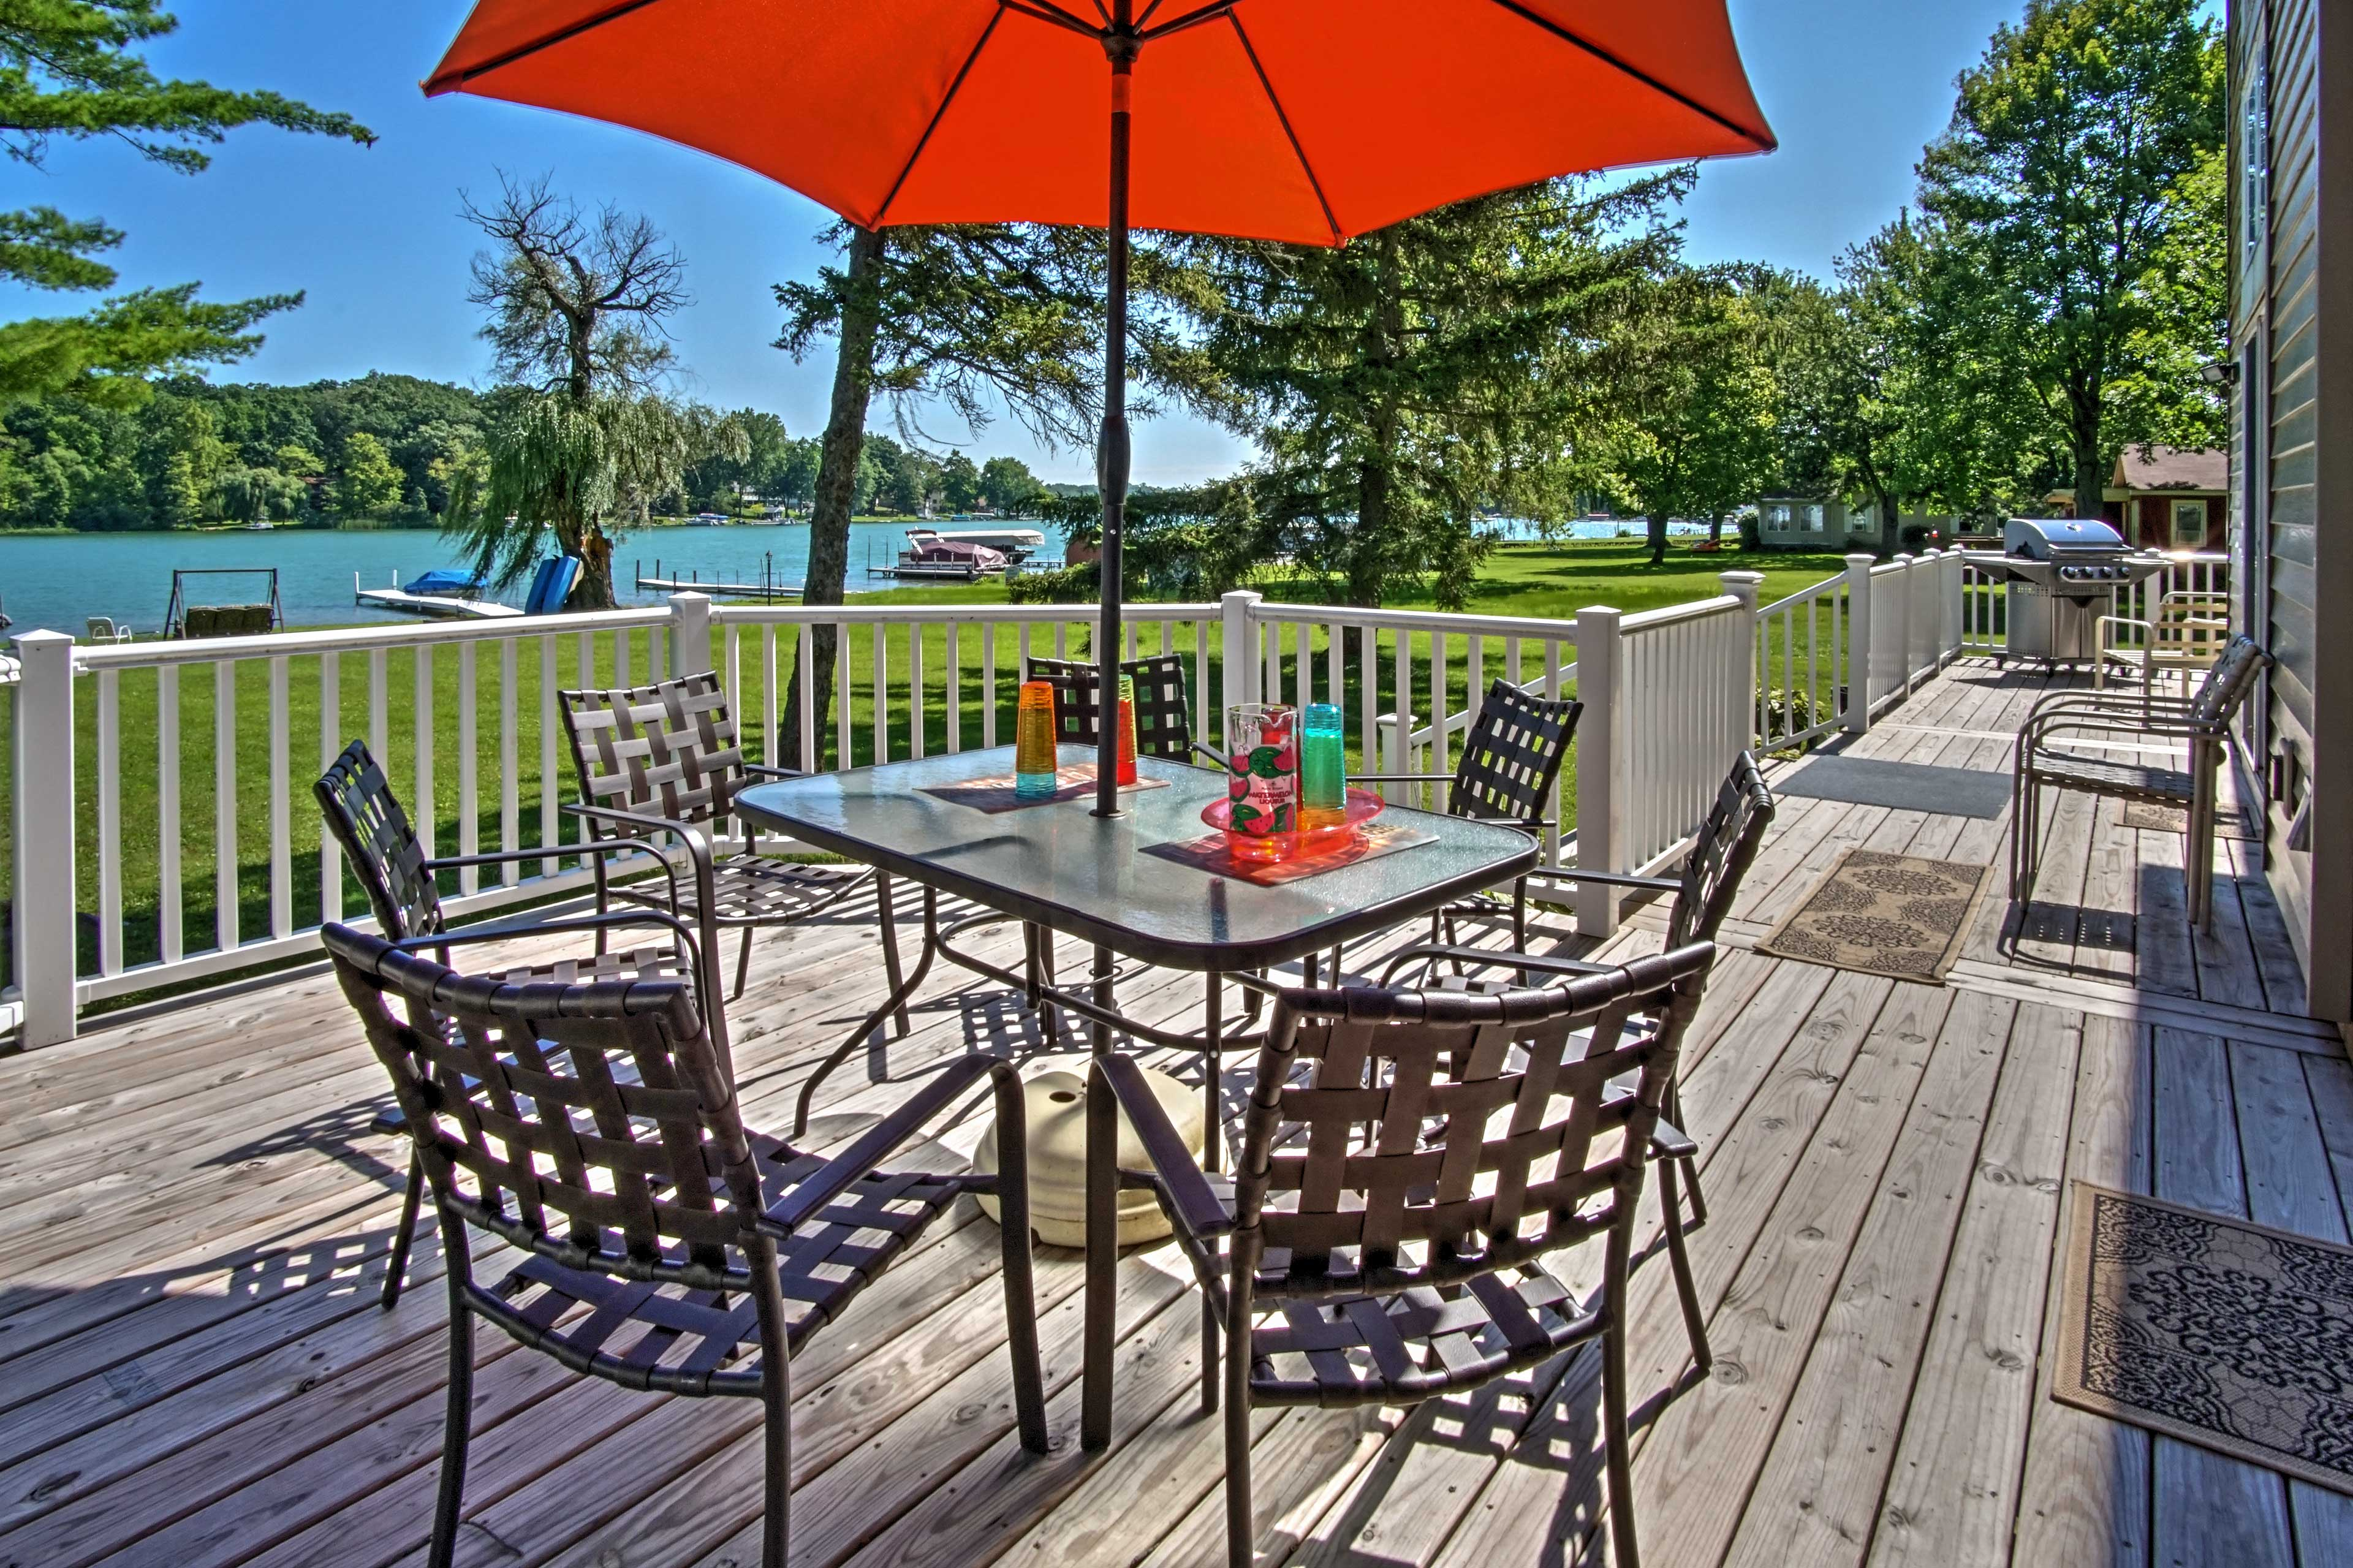 Revel in the scenic views while sipping a drink at this shaded patio table.